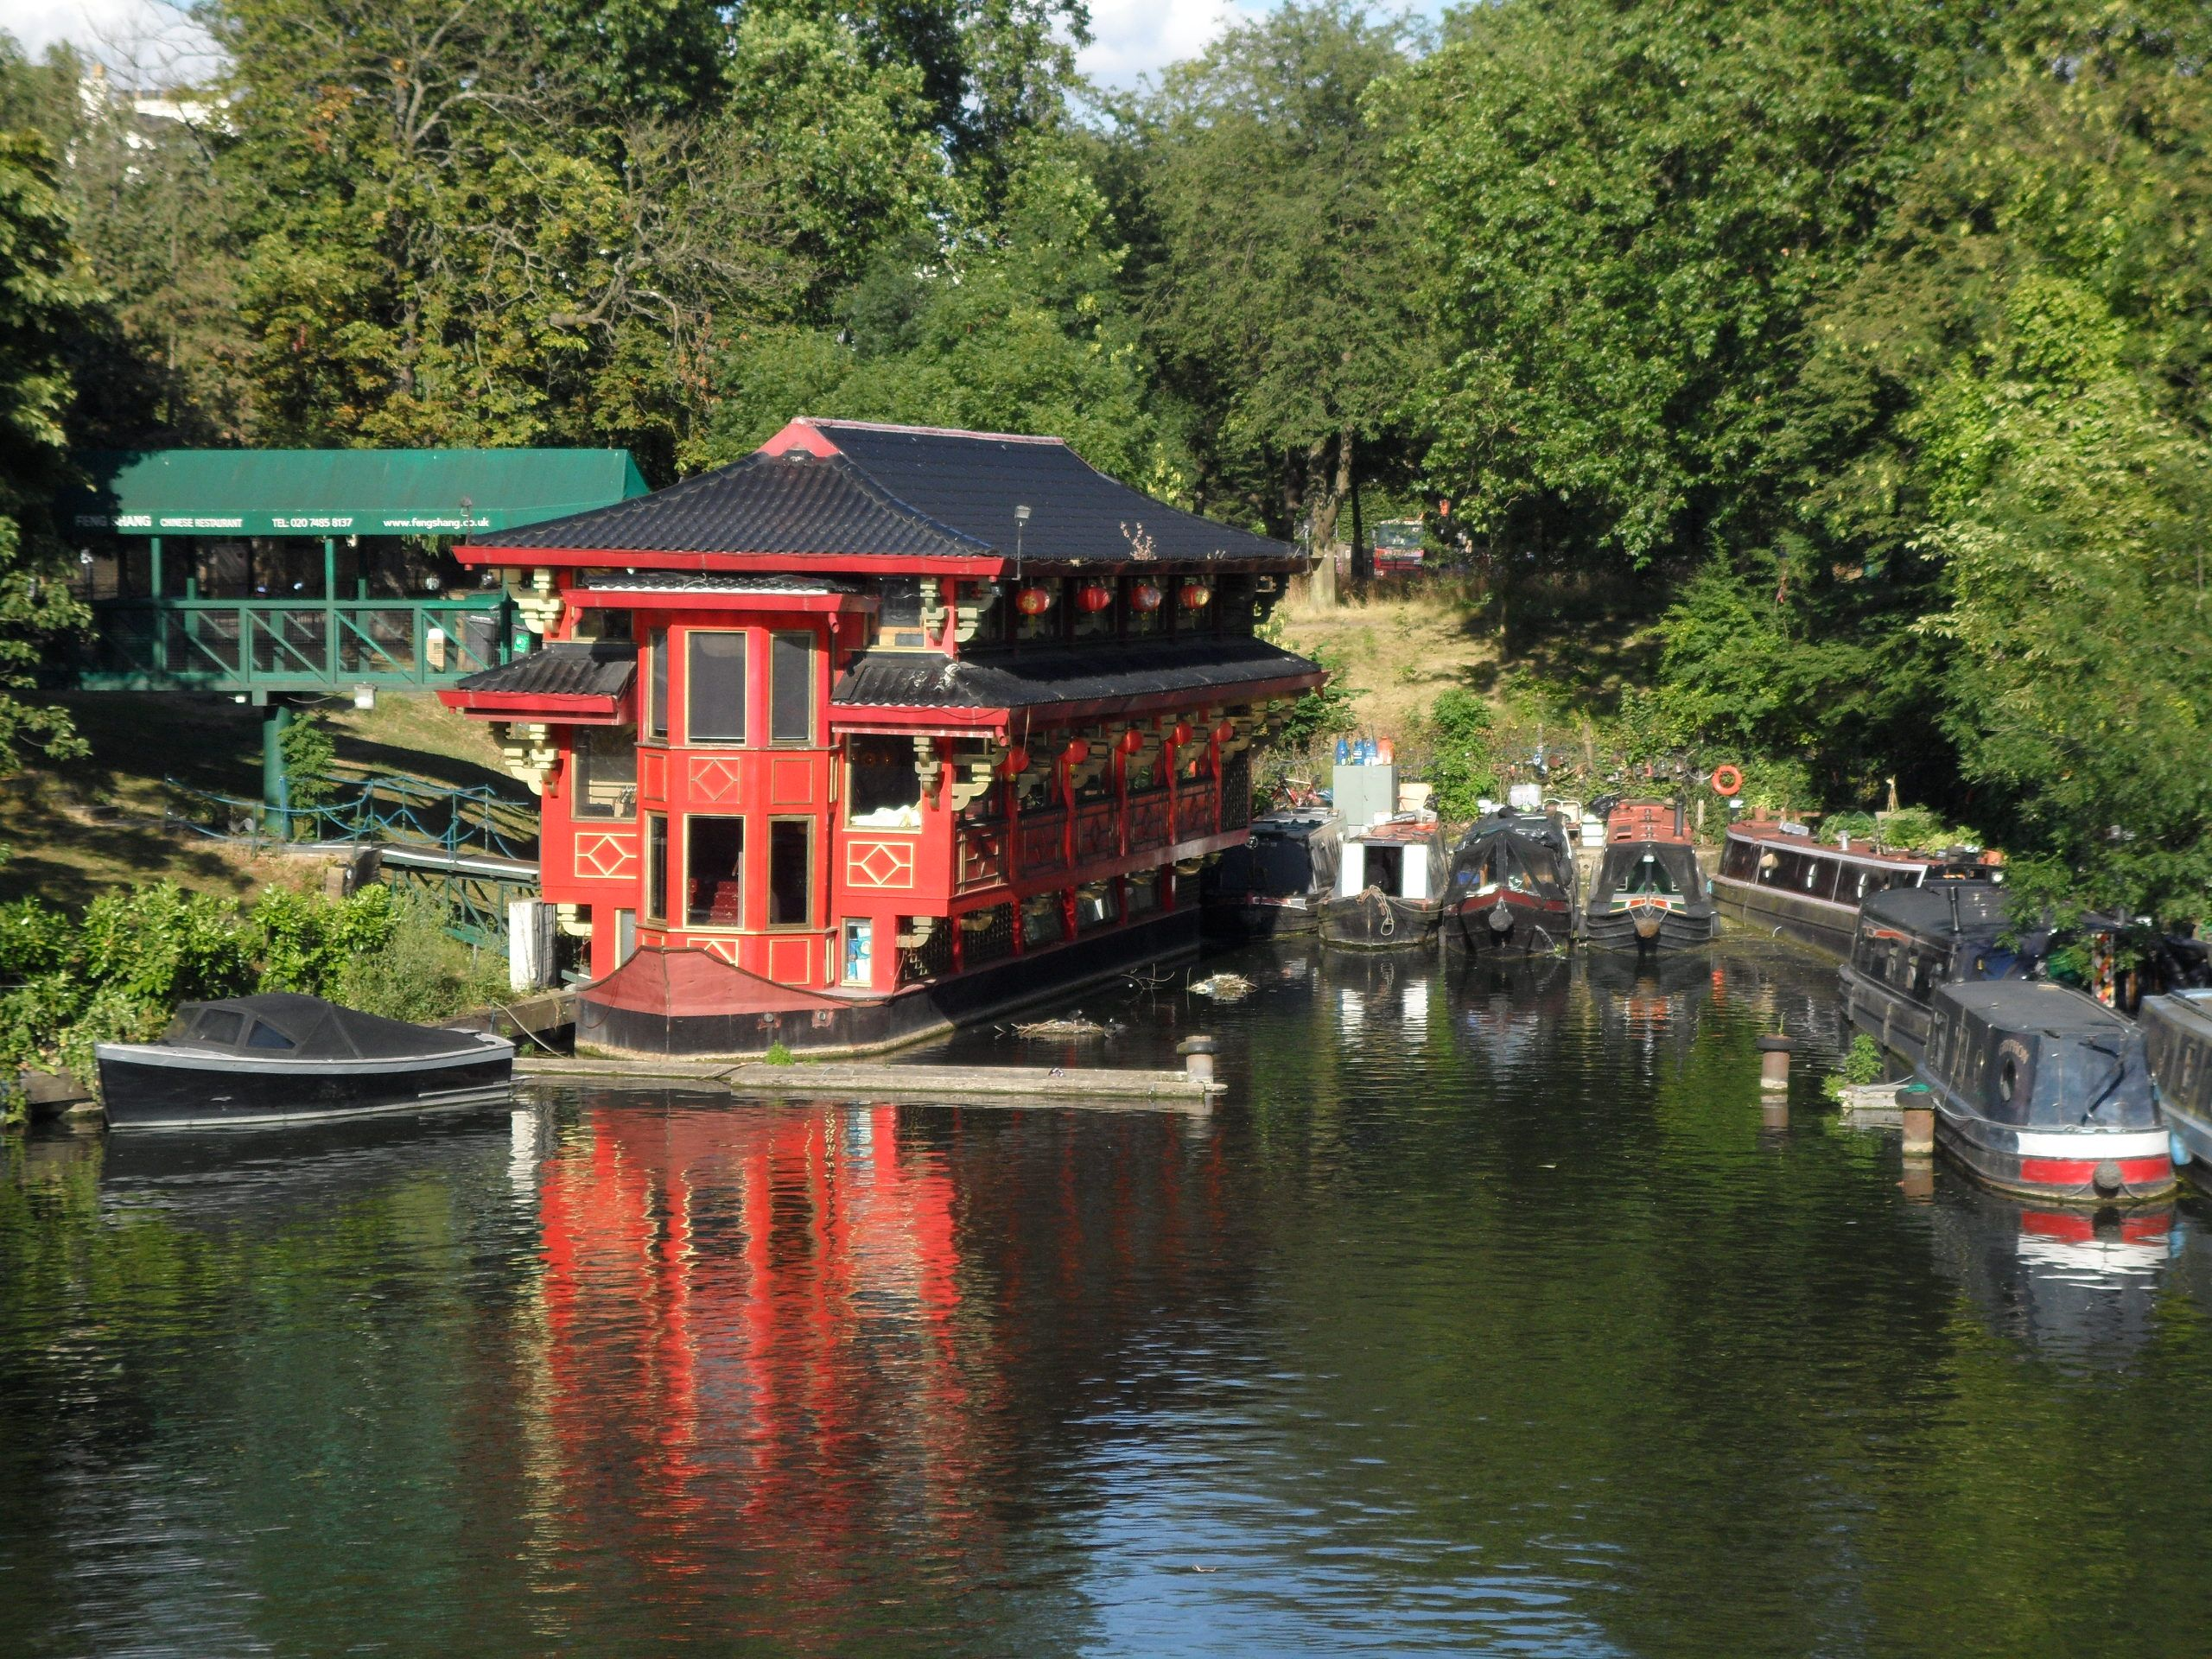 A Floating Chinese Restaurant On Regent S Canal Canals Regents Canal Chinese Restaurant